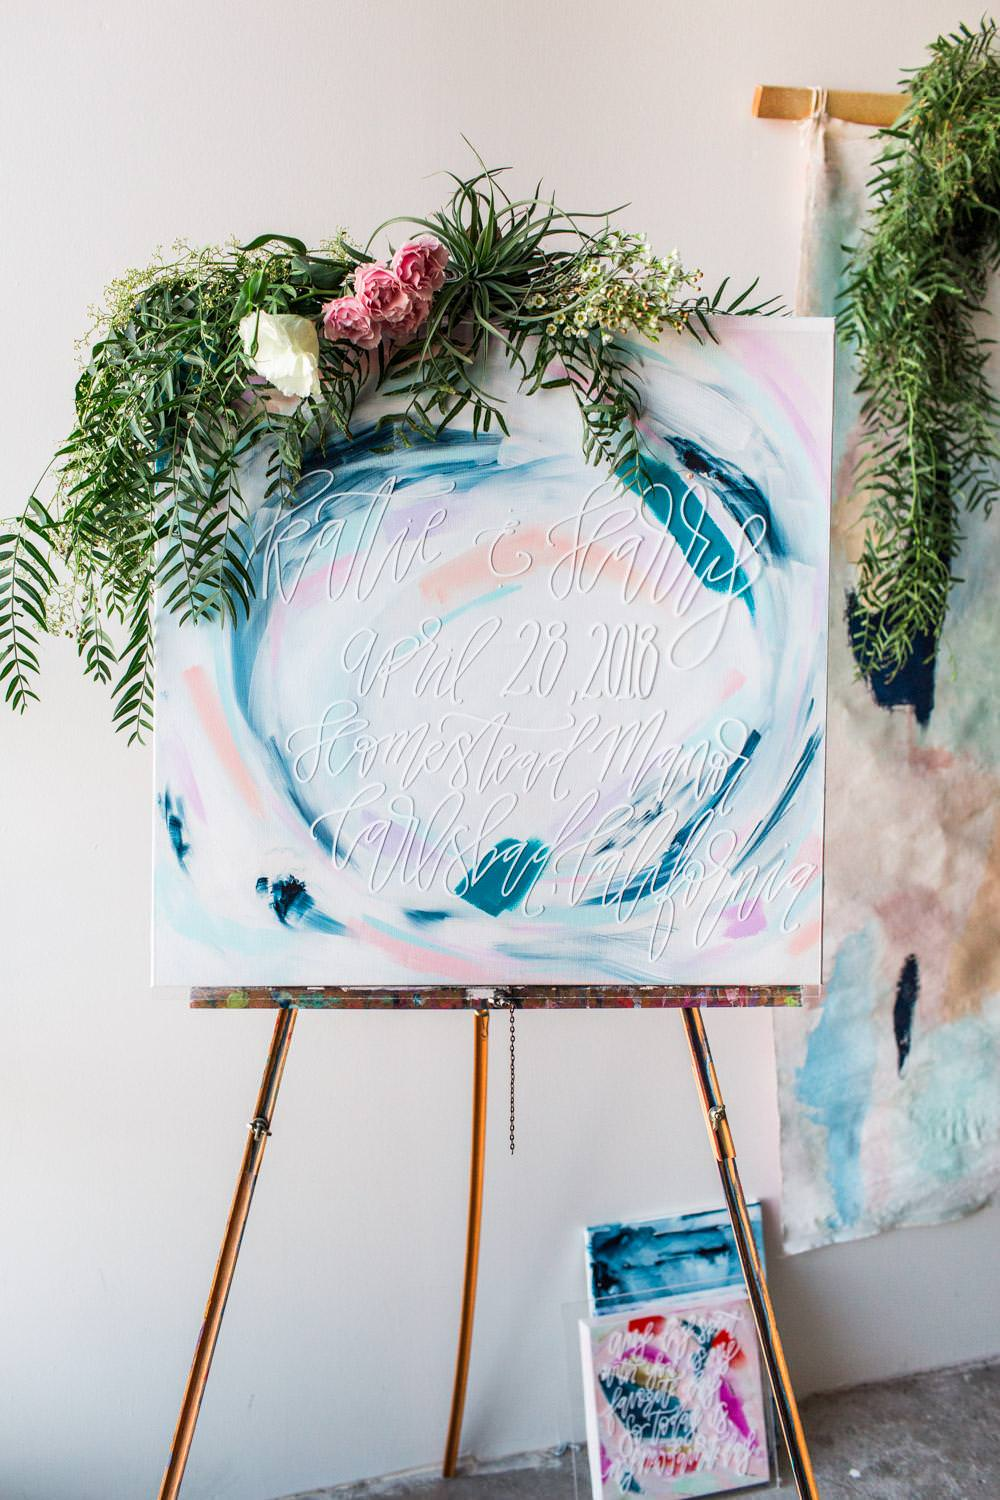 Custom Wedding Art: Wedding Decor You Can Keep for Your Home by Samantha Louise Designs, colorful wedding art, Cavin Elizabeth Photography